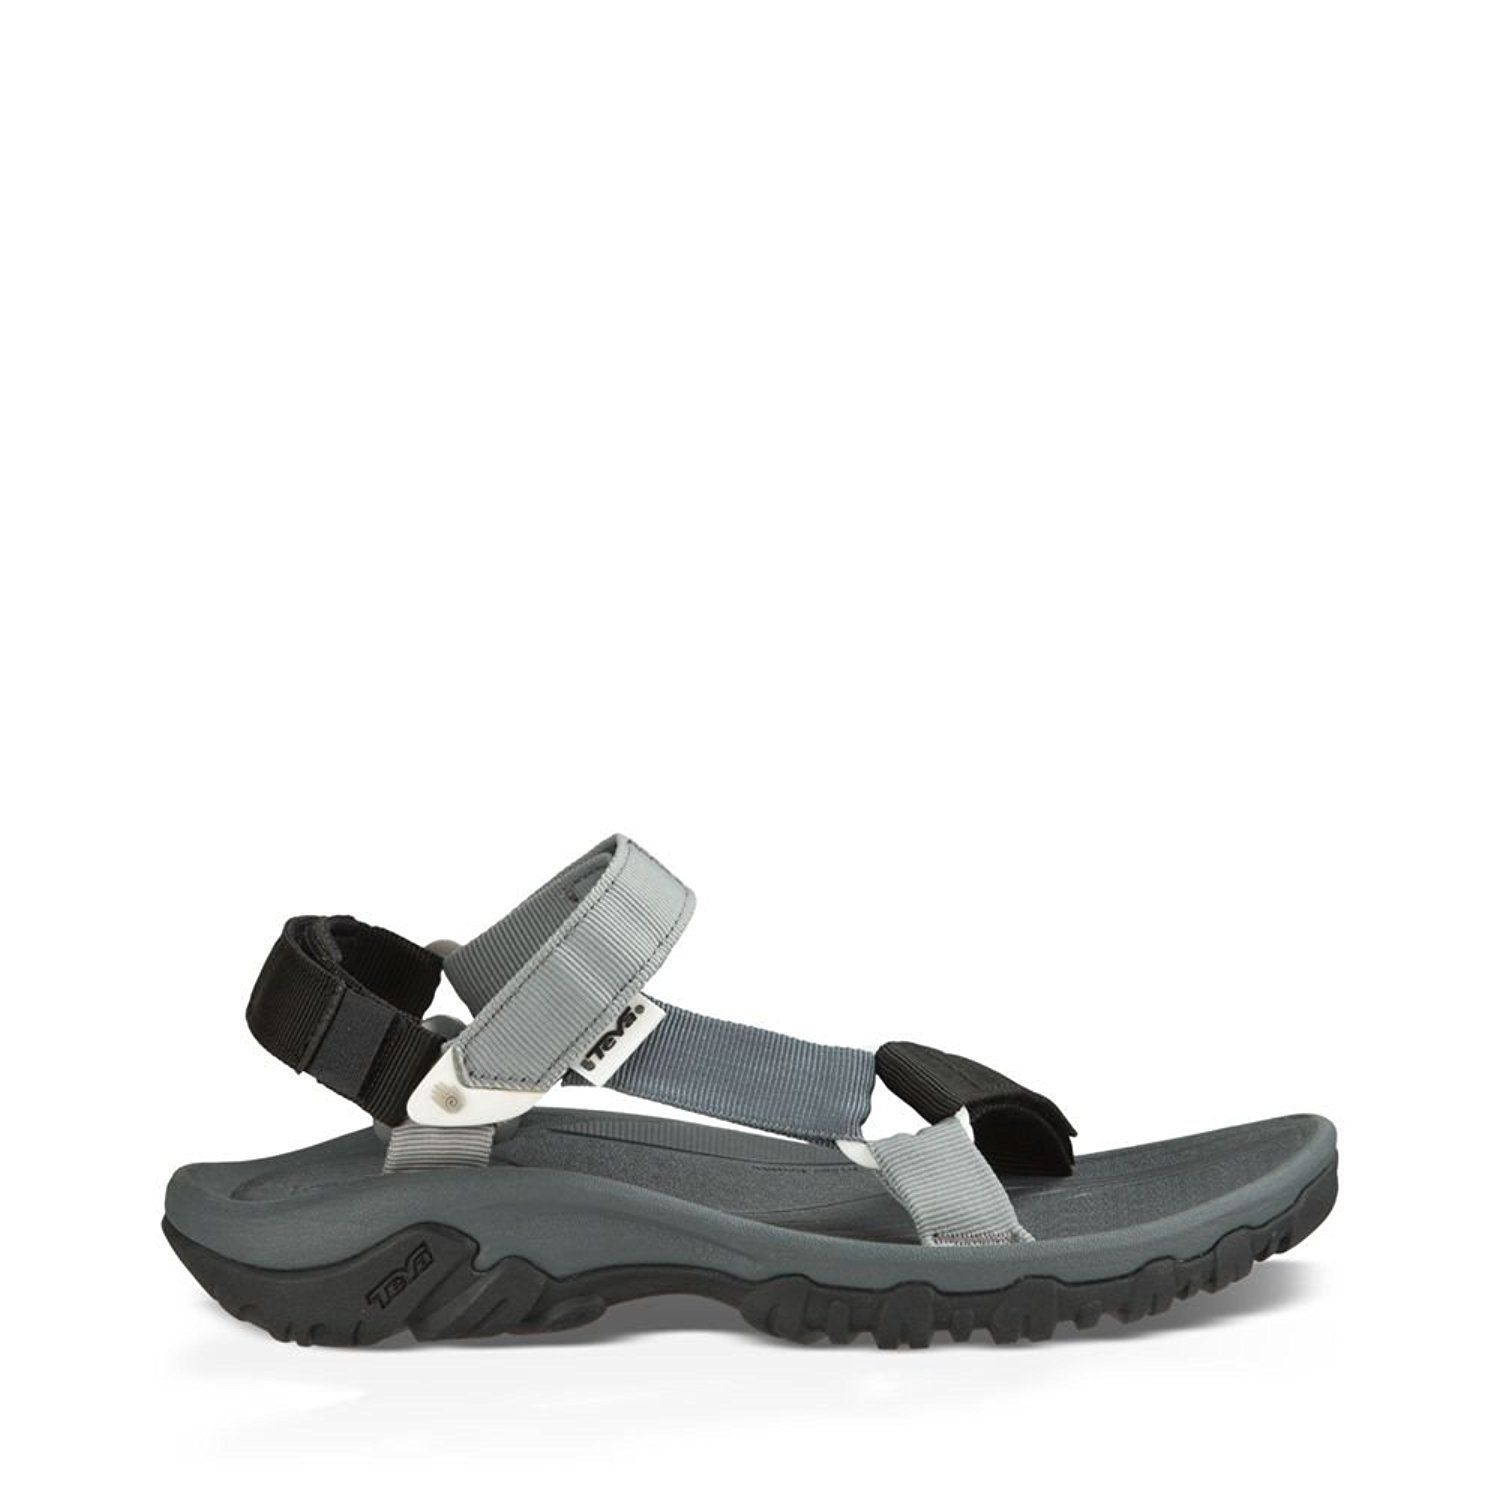 c144fac1db3e Teva - Hurricane Xlt - Beams - Women    Insider s special review you can t  miss. Read more   Teva sandals